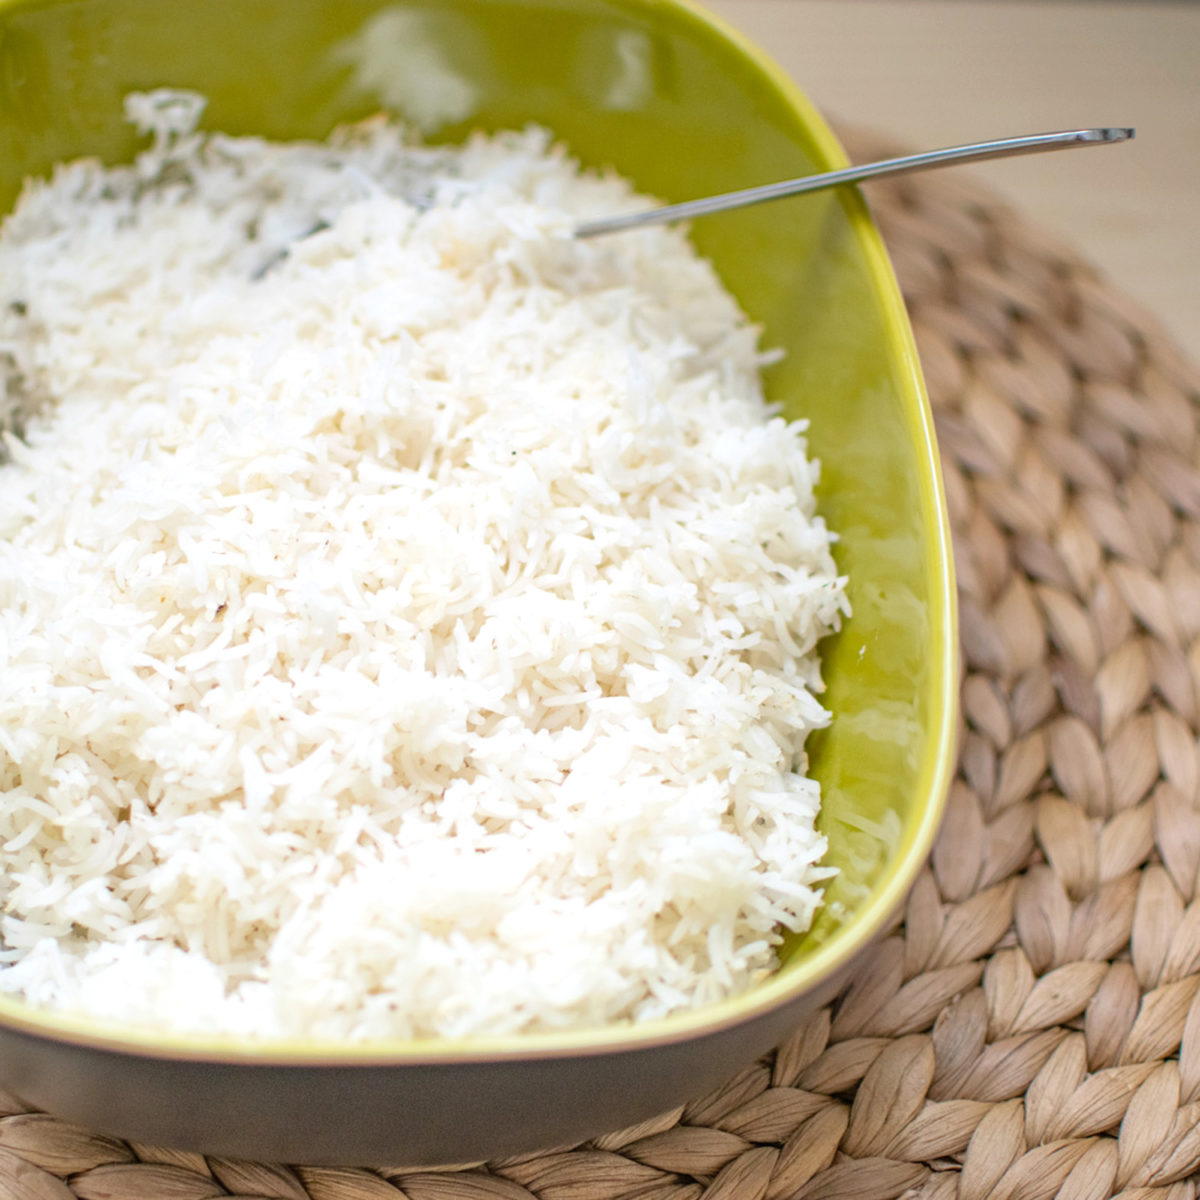 Baked White Rice in Green Casserole